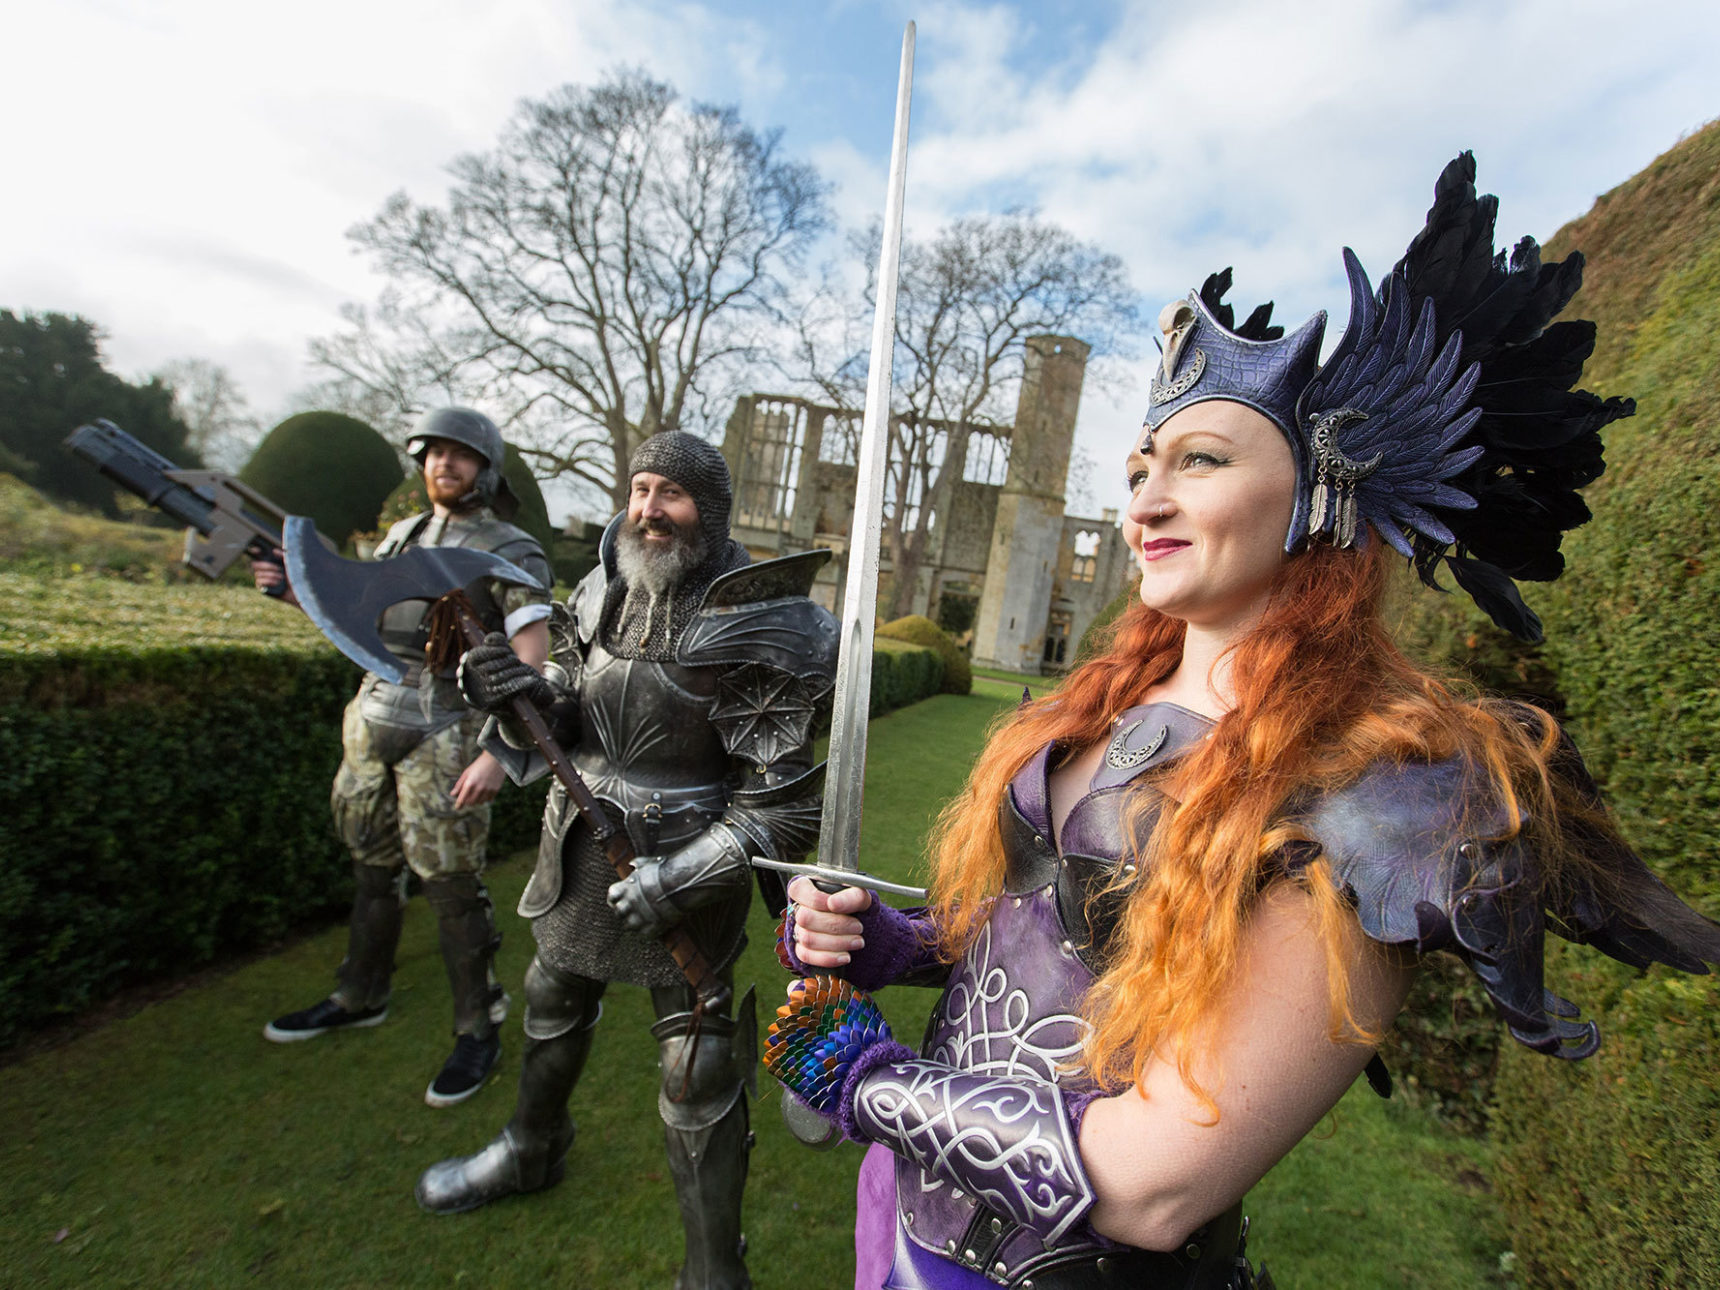 Performers clad in medieval armour stand in gardens